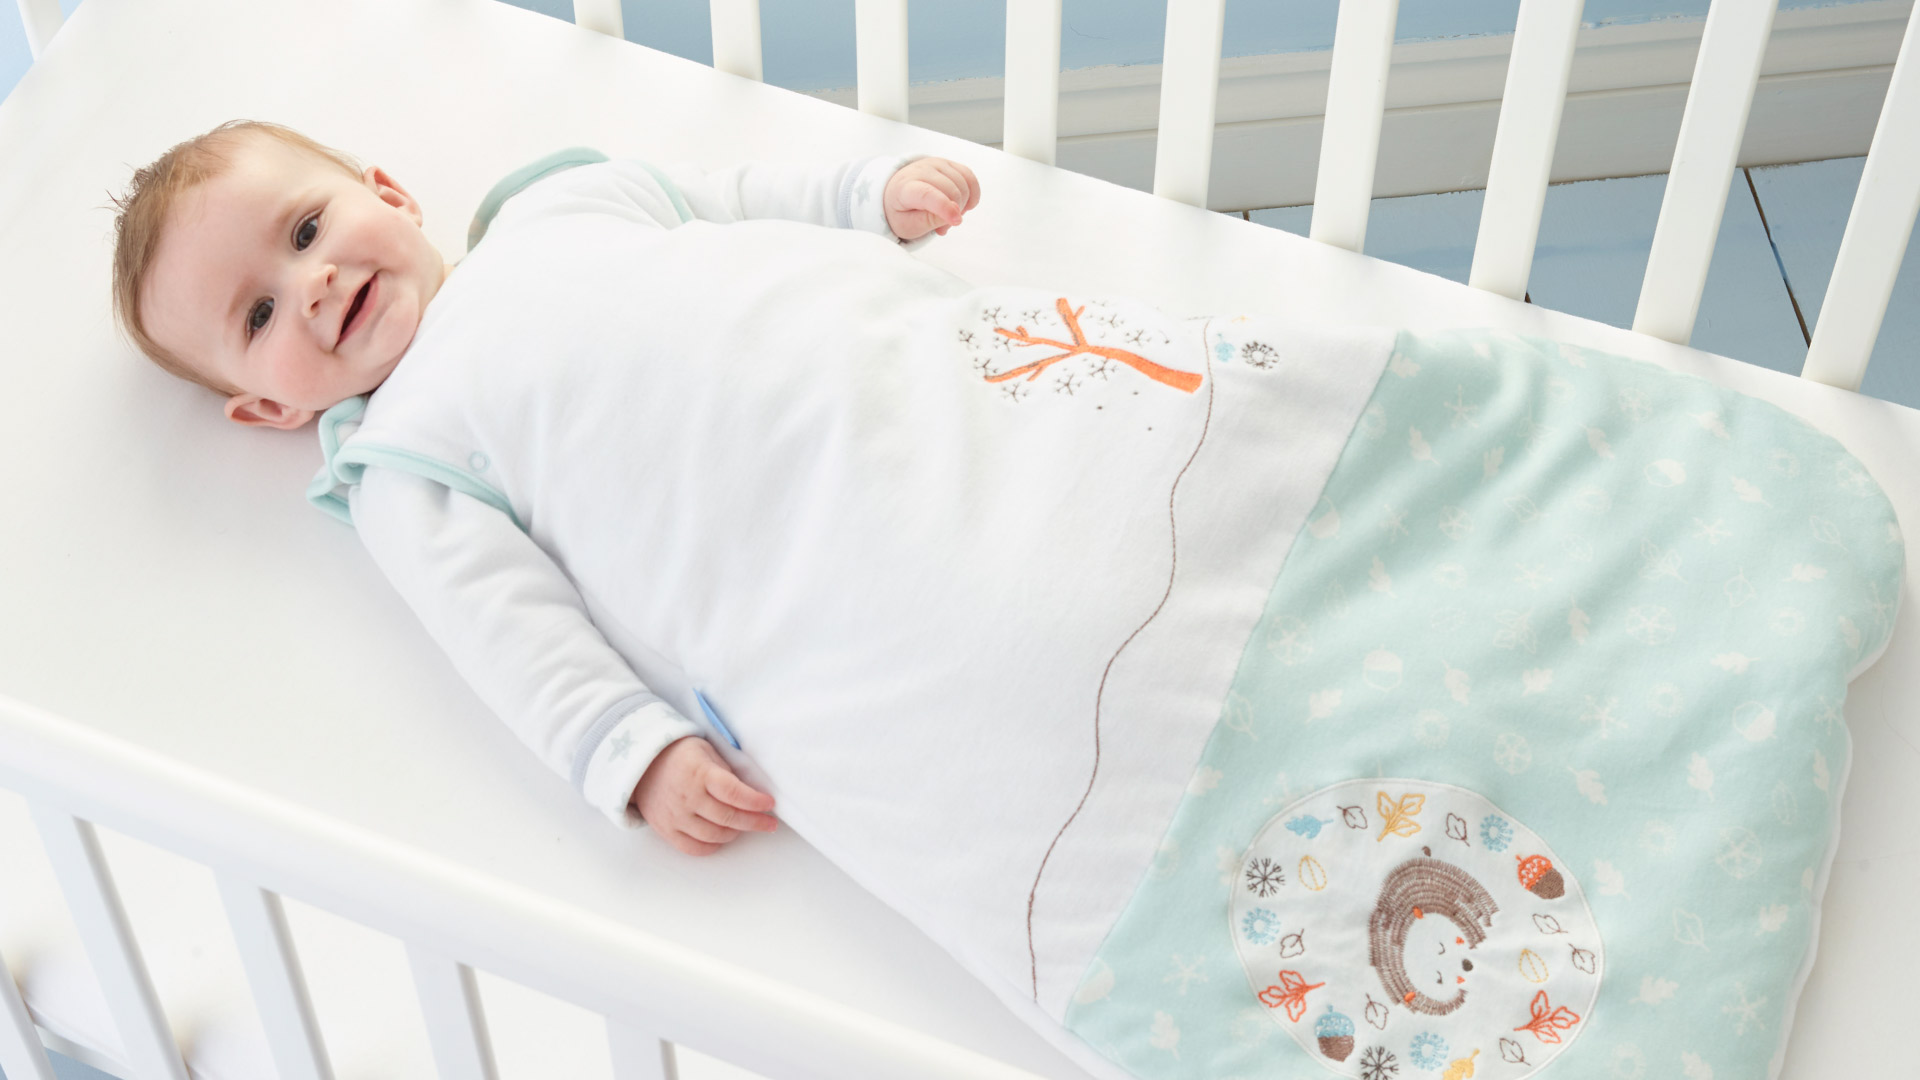 The Gro Company Are Our Longest Standing Partnership And Market Leaders In Baby Sleep Bags Lullaby Trust Recommend As A Safer